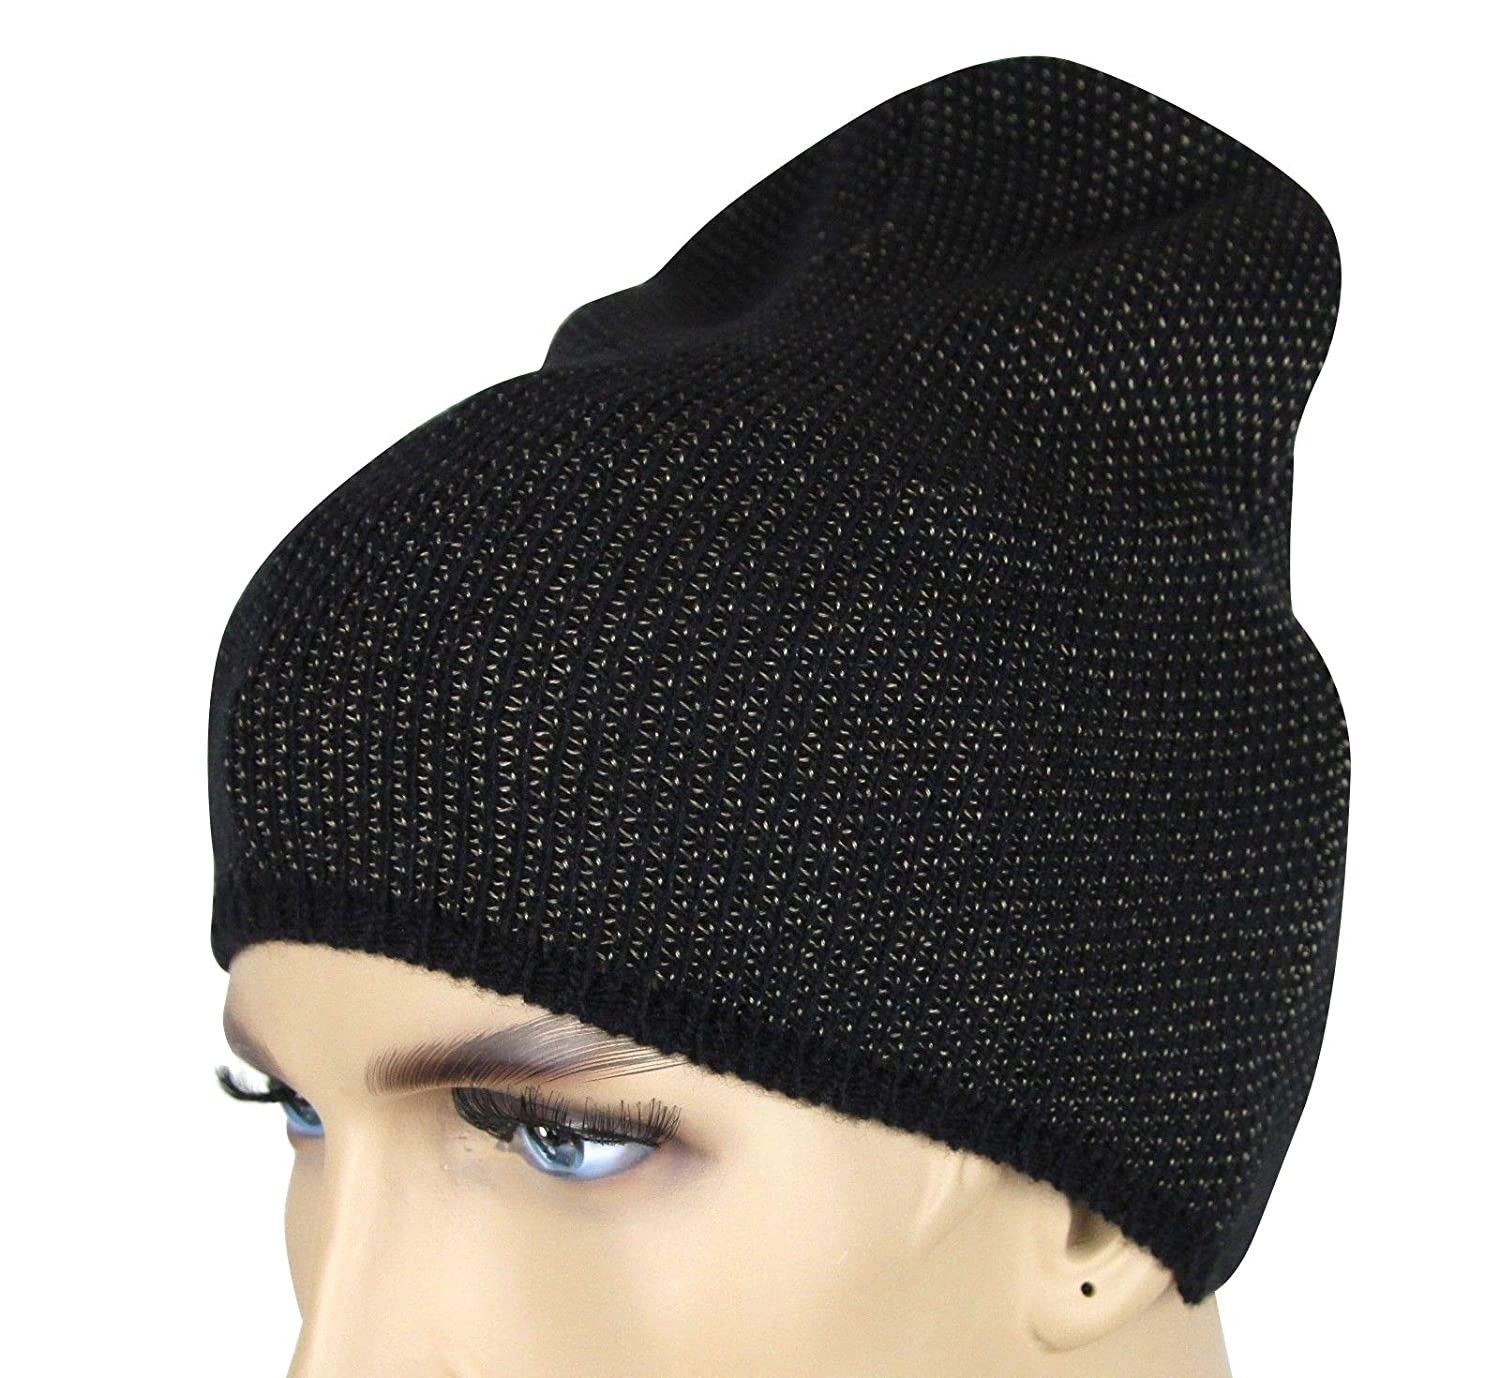 Amazon.com  Gucci Unisex Black Beige Wool Cashmere Cotton Knit Beanie Hat  with Logo 352350 1079  Clothing d5aa27f1791